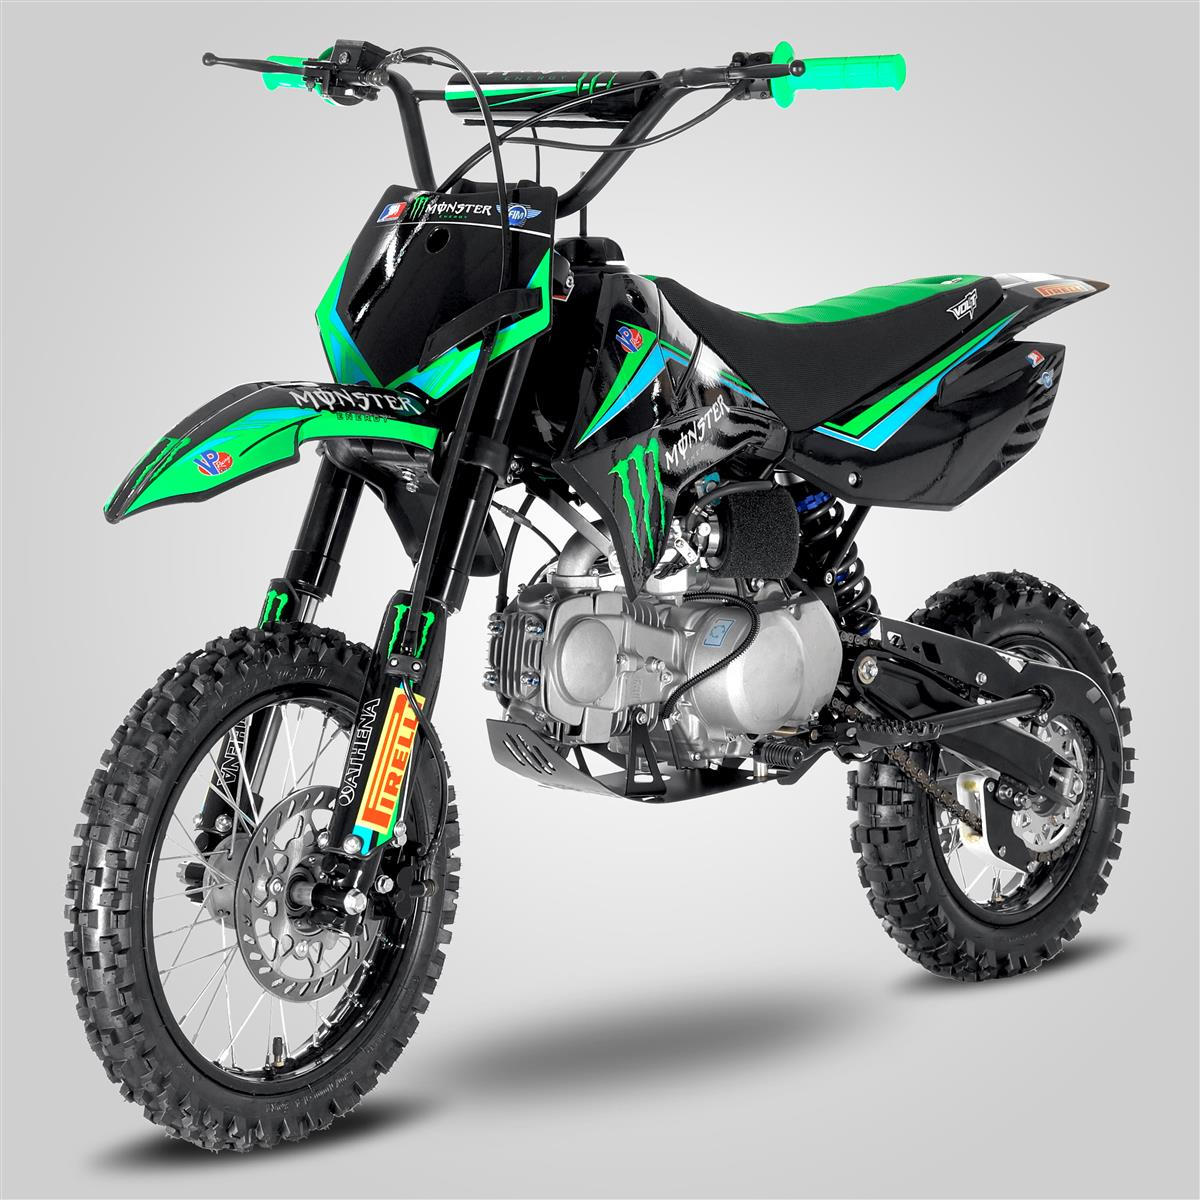 dirt bike 125cc 12 14 smx apollo gunshot probike smallmx dirt bike pit bike quads minimoto. Black Bedroom Furniture Sets. Home Design Ideas